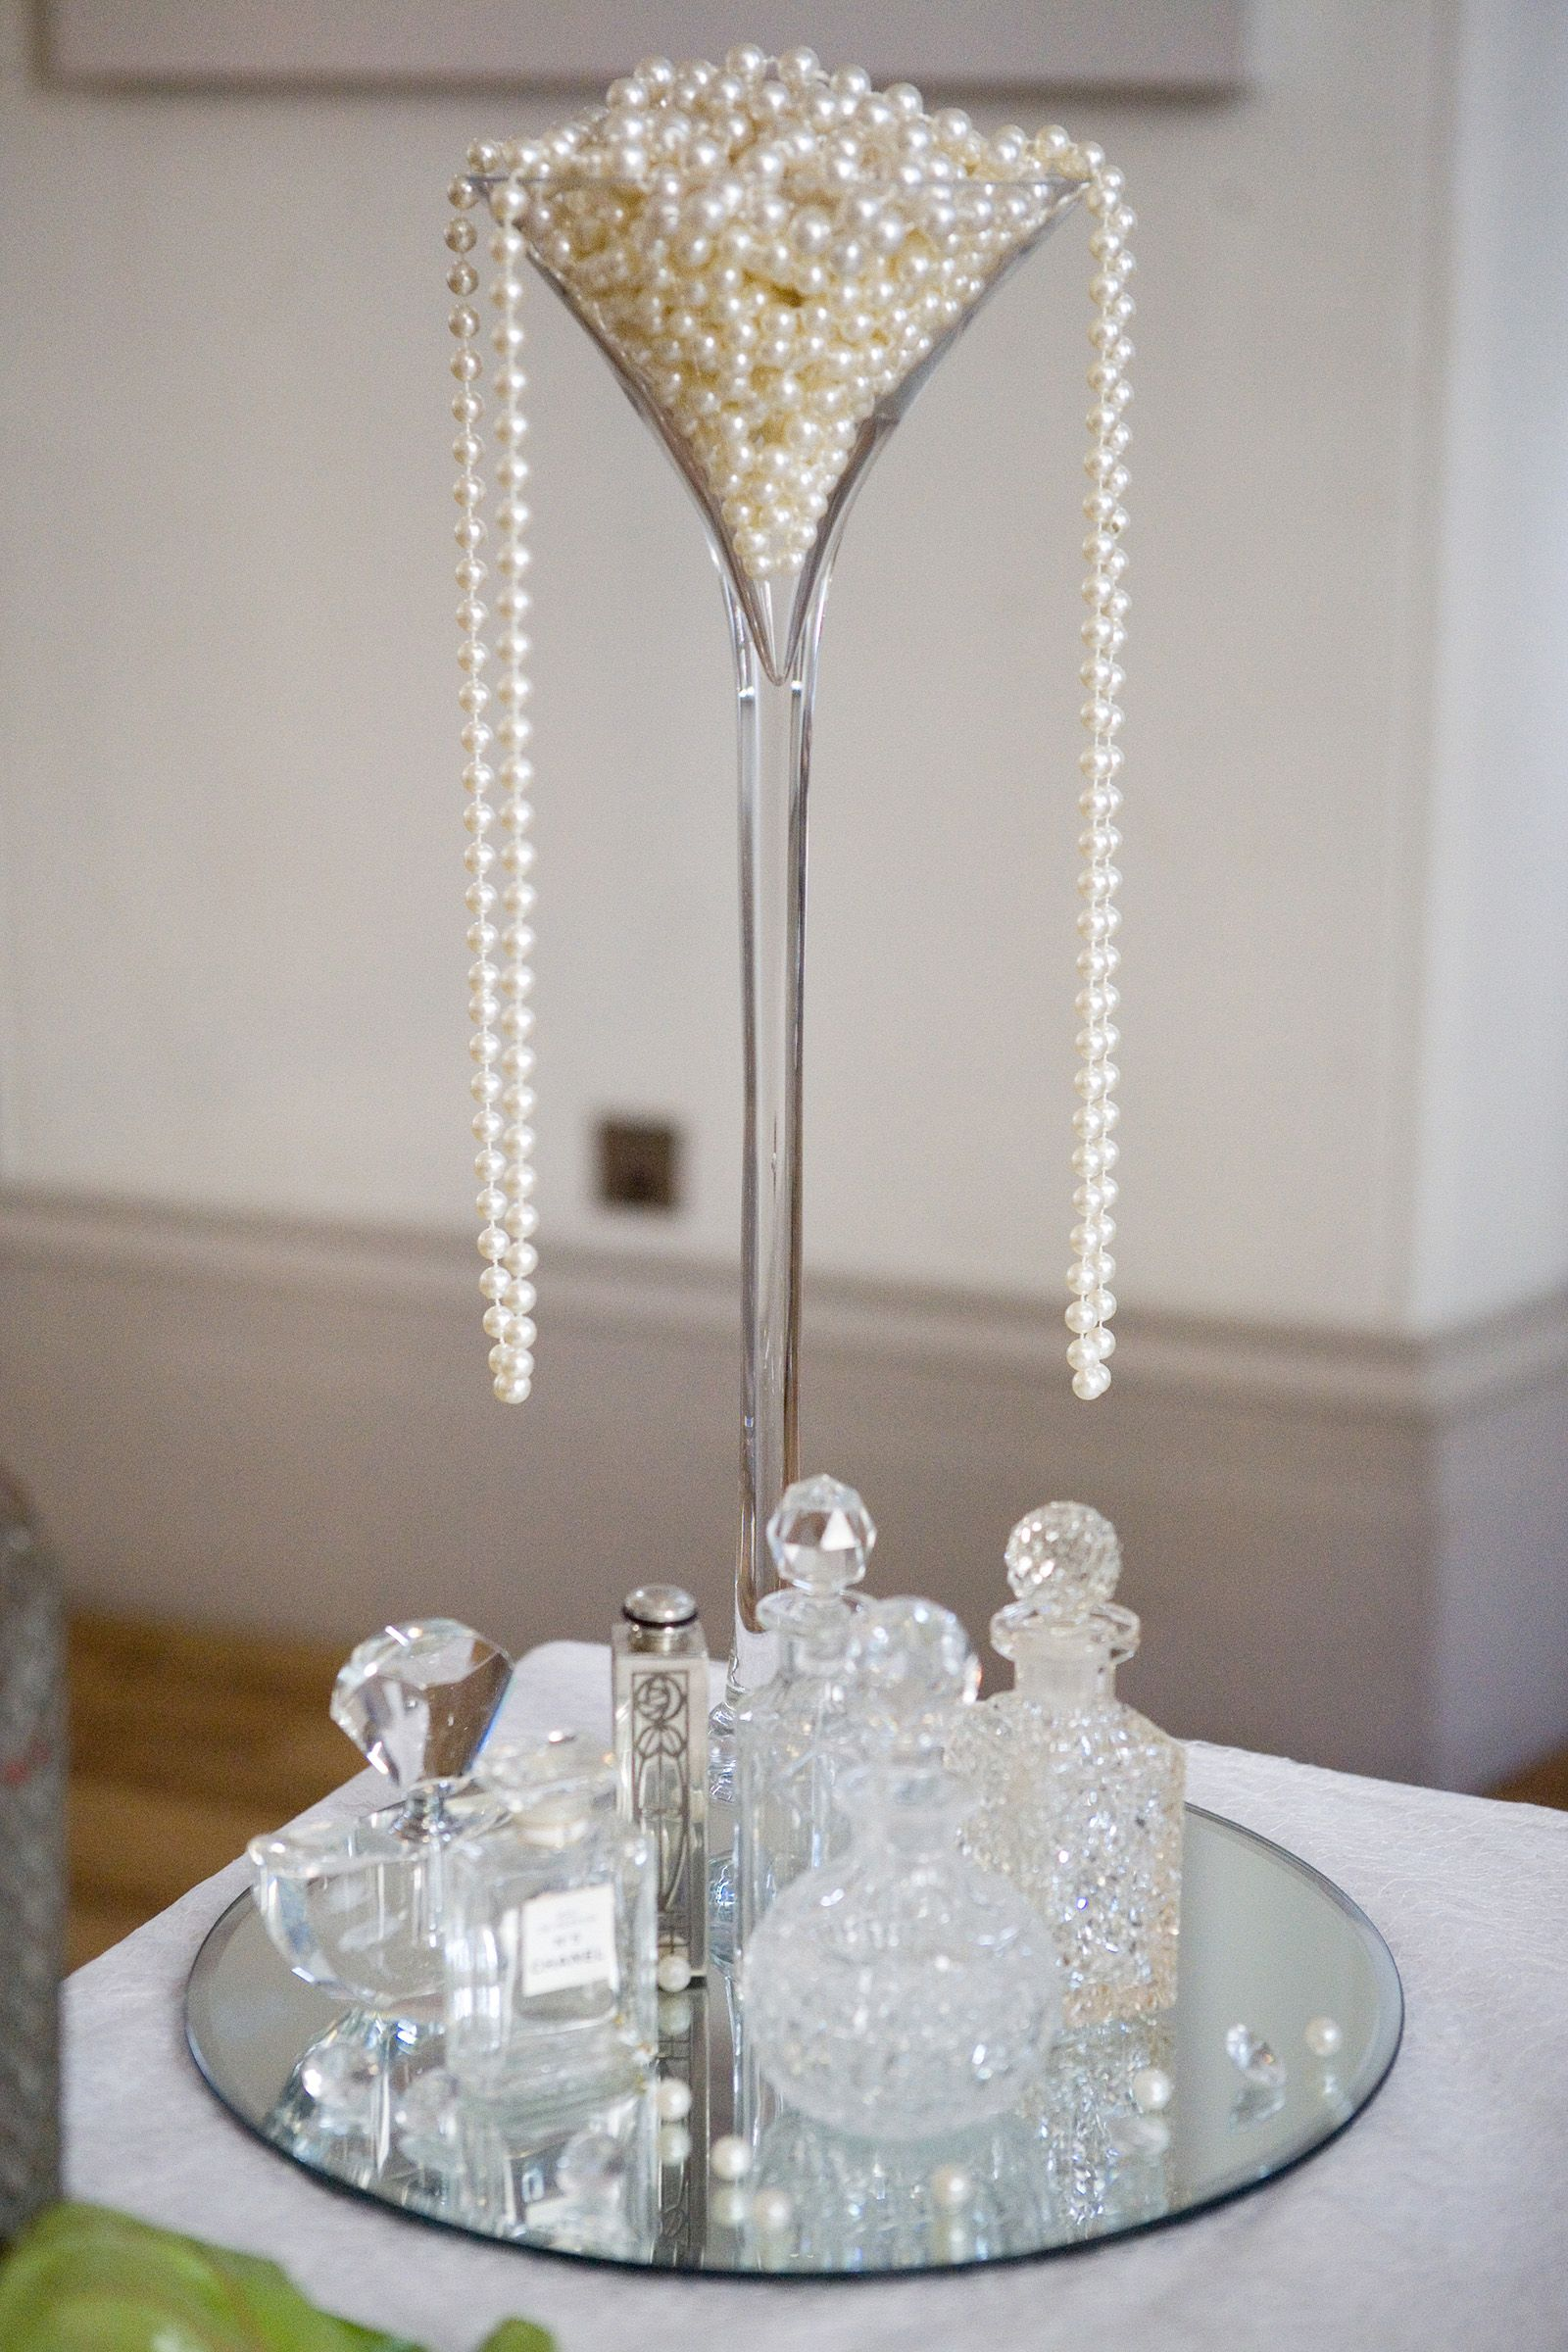 s Party Ideas  Champagne glasses Centre pieces and Wedding styles